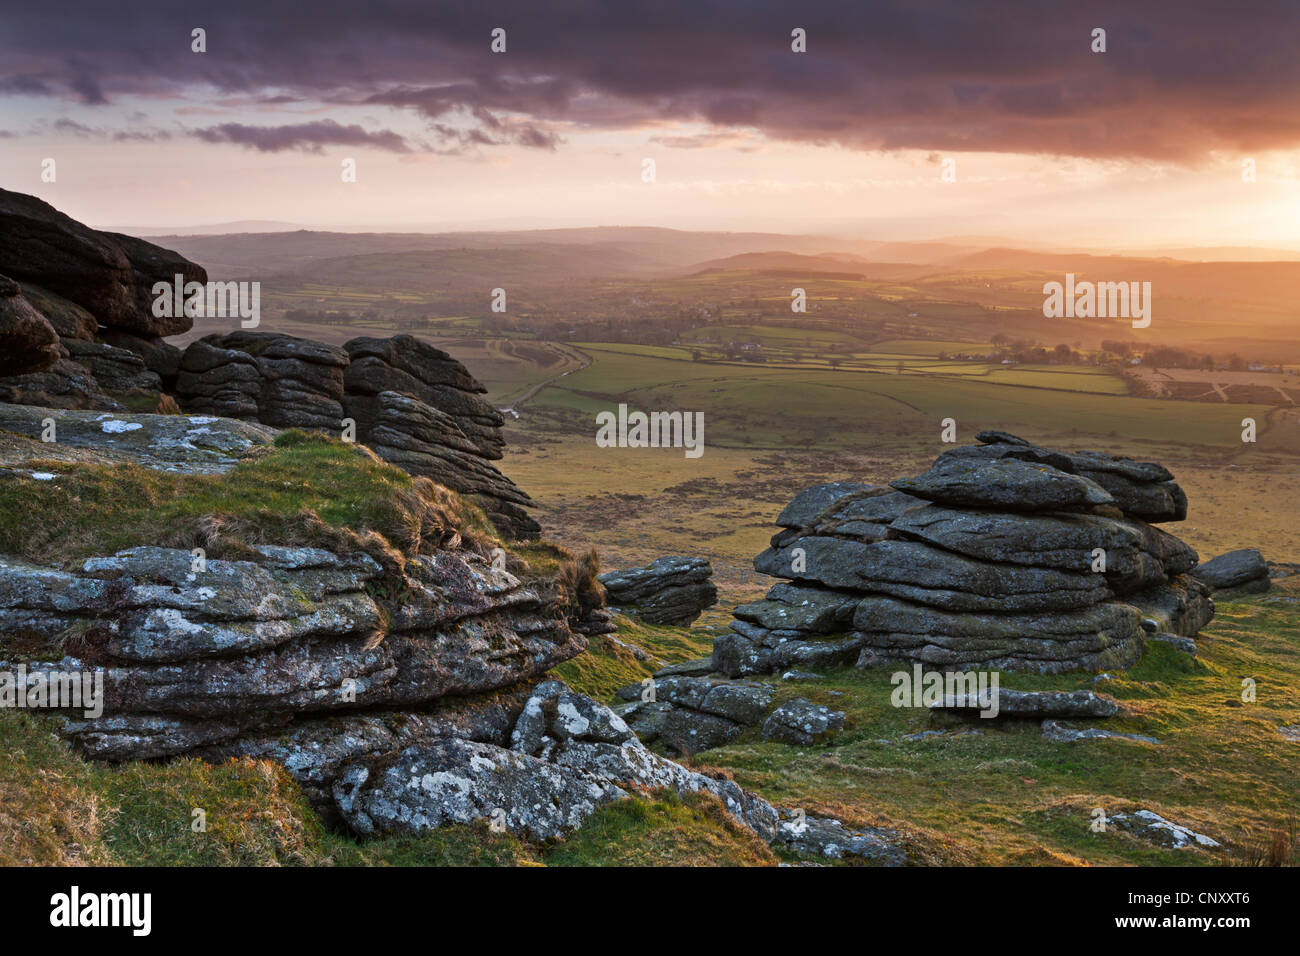 Evening sunlight over Devon countryside, viewed from Arms Tor, Dartmoor, Devon, England. Spring (April) 2012. - Stock Image